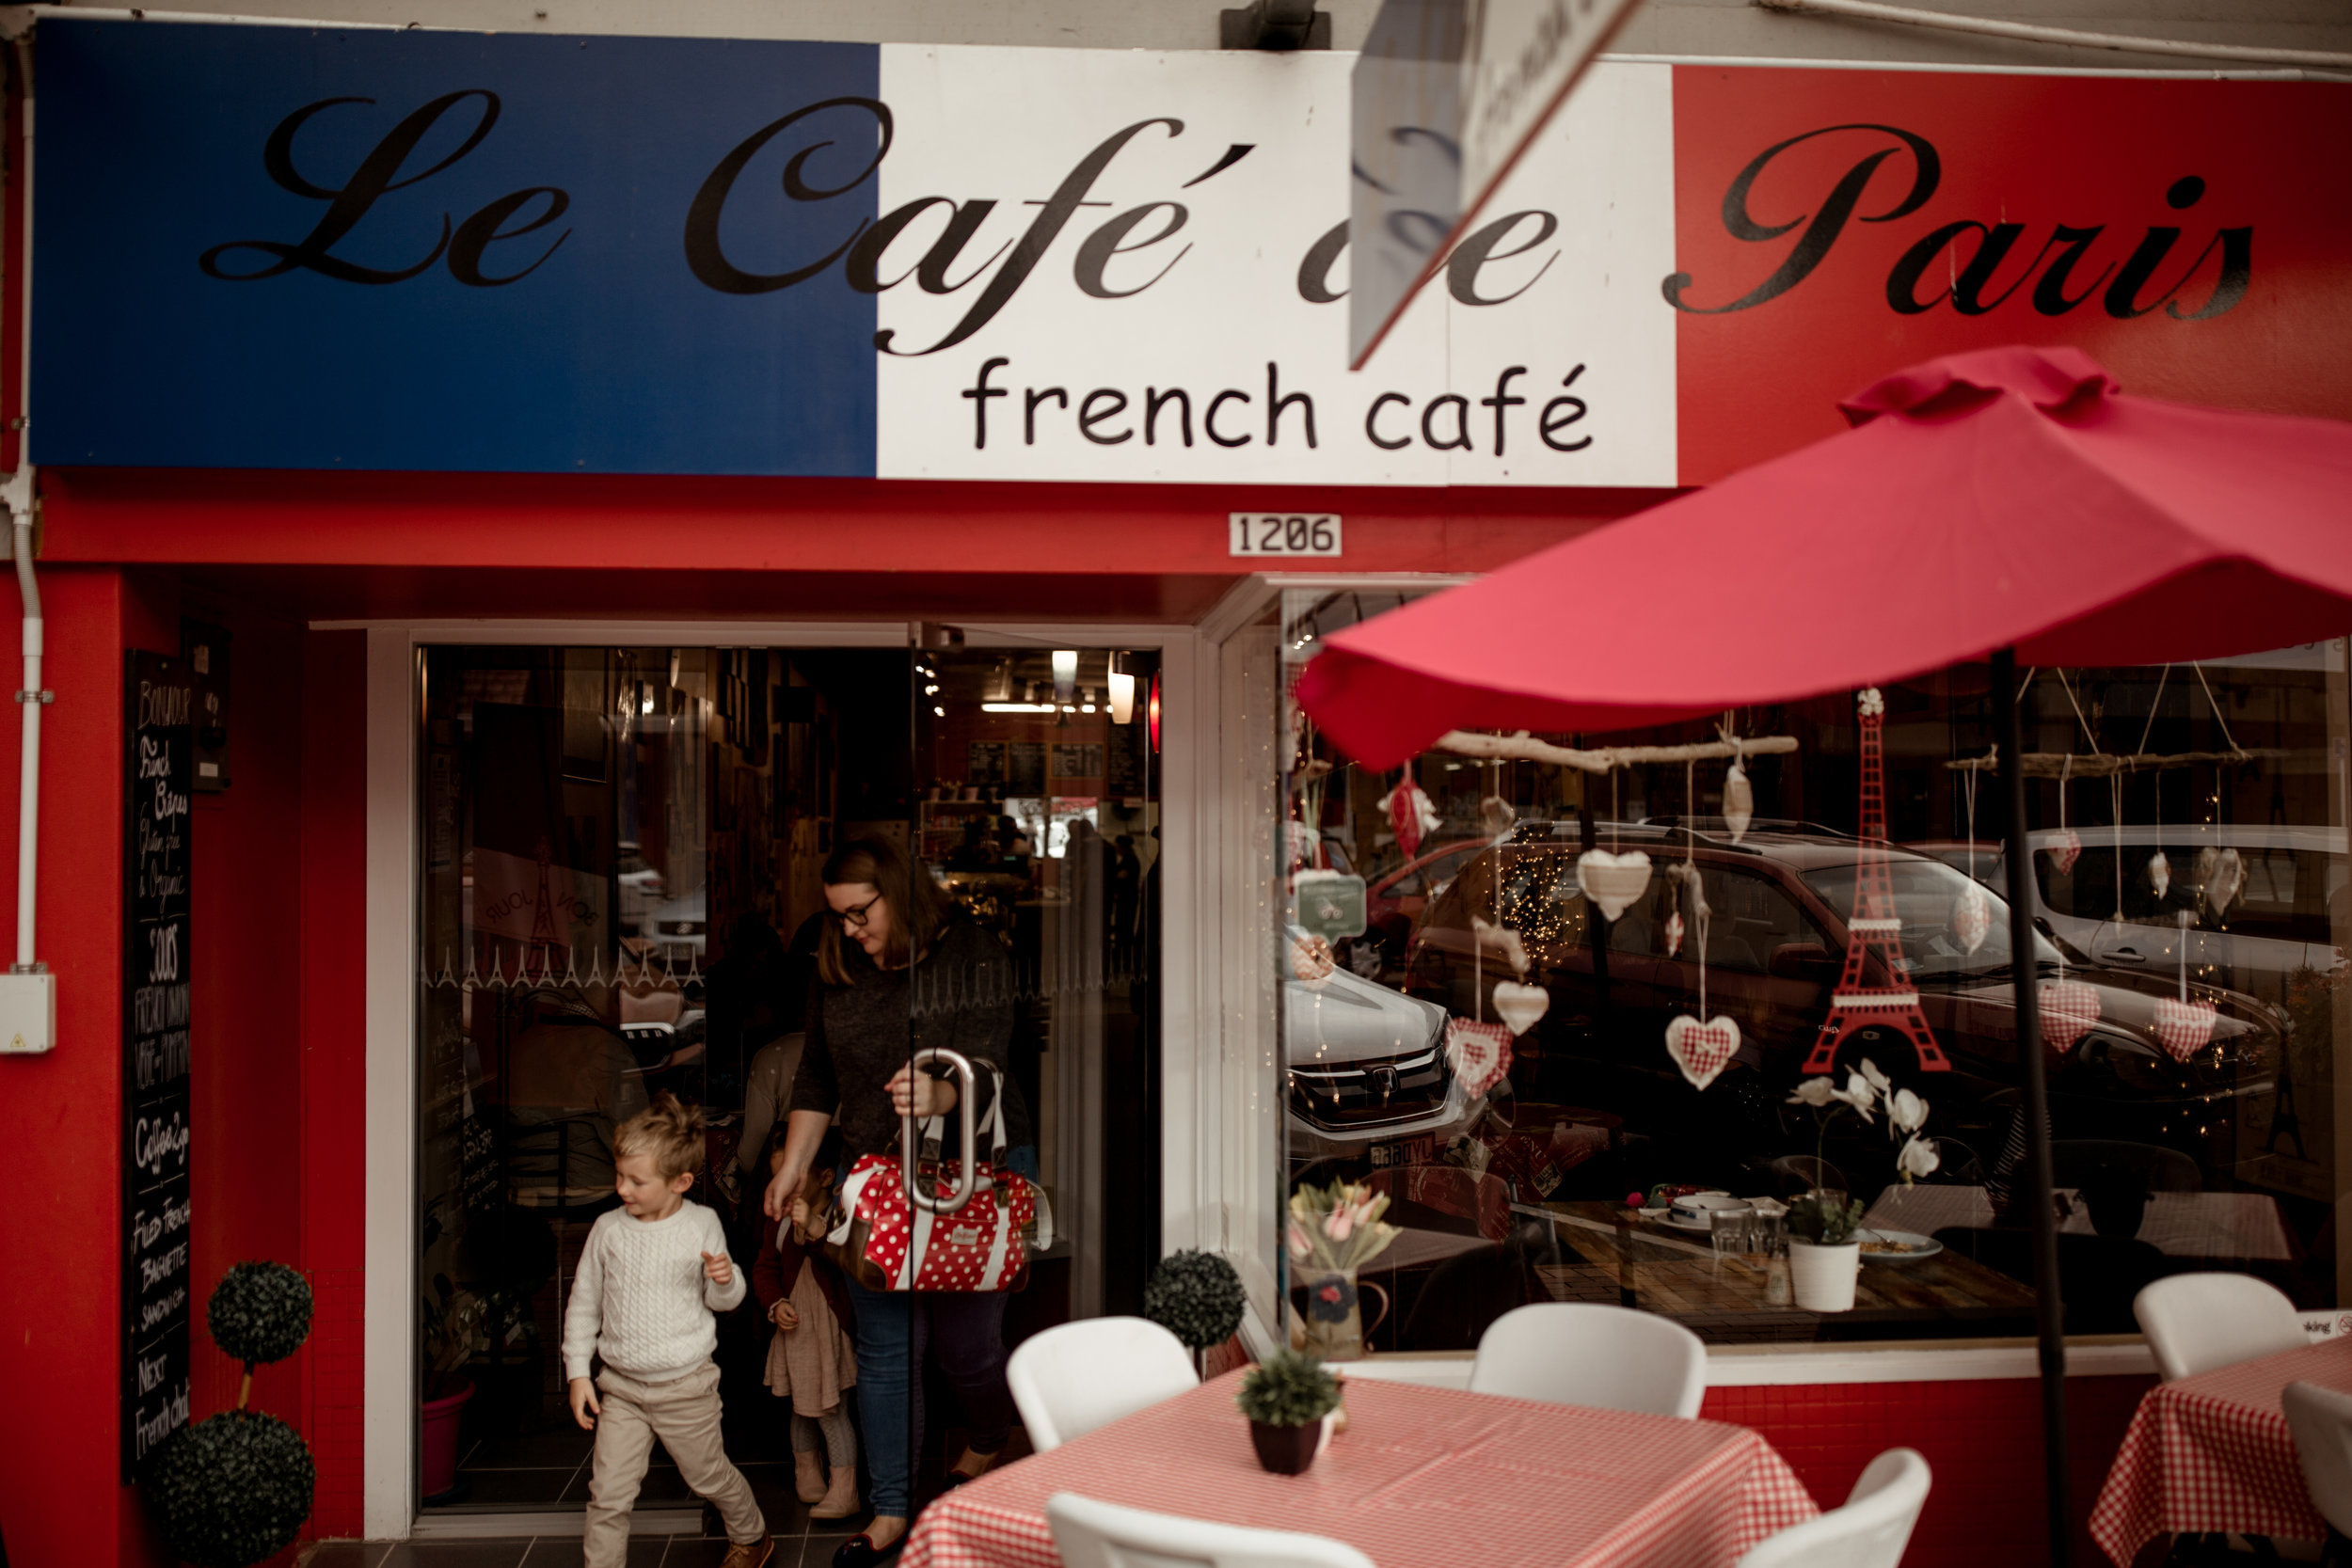 If you like coffee, lets 100% meet at my favourite spot, I can impress you with my terrible accent and you can listen as Valerie corrects me.  This spot's organic, It's yummy. It's crepes. Need I say more?  If you like French cuisine, or just food in general, we already have alot in common.